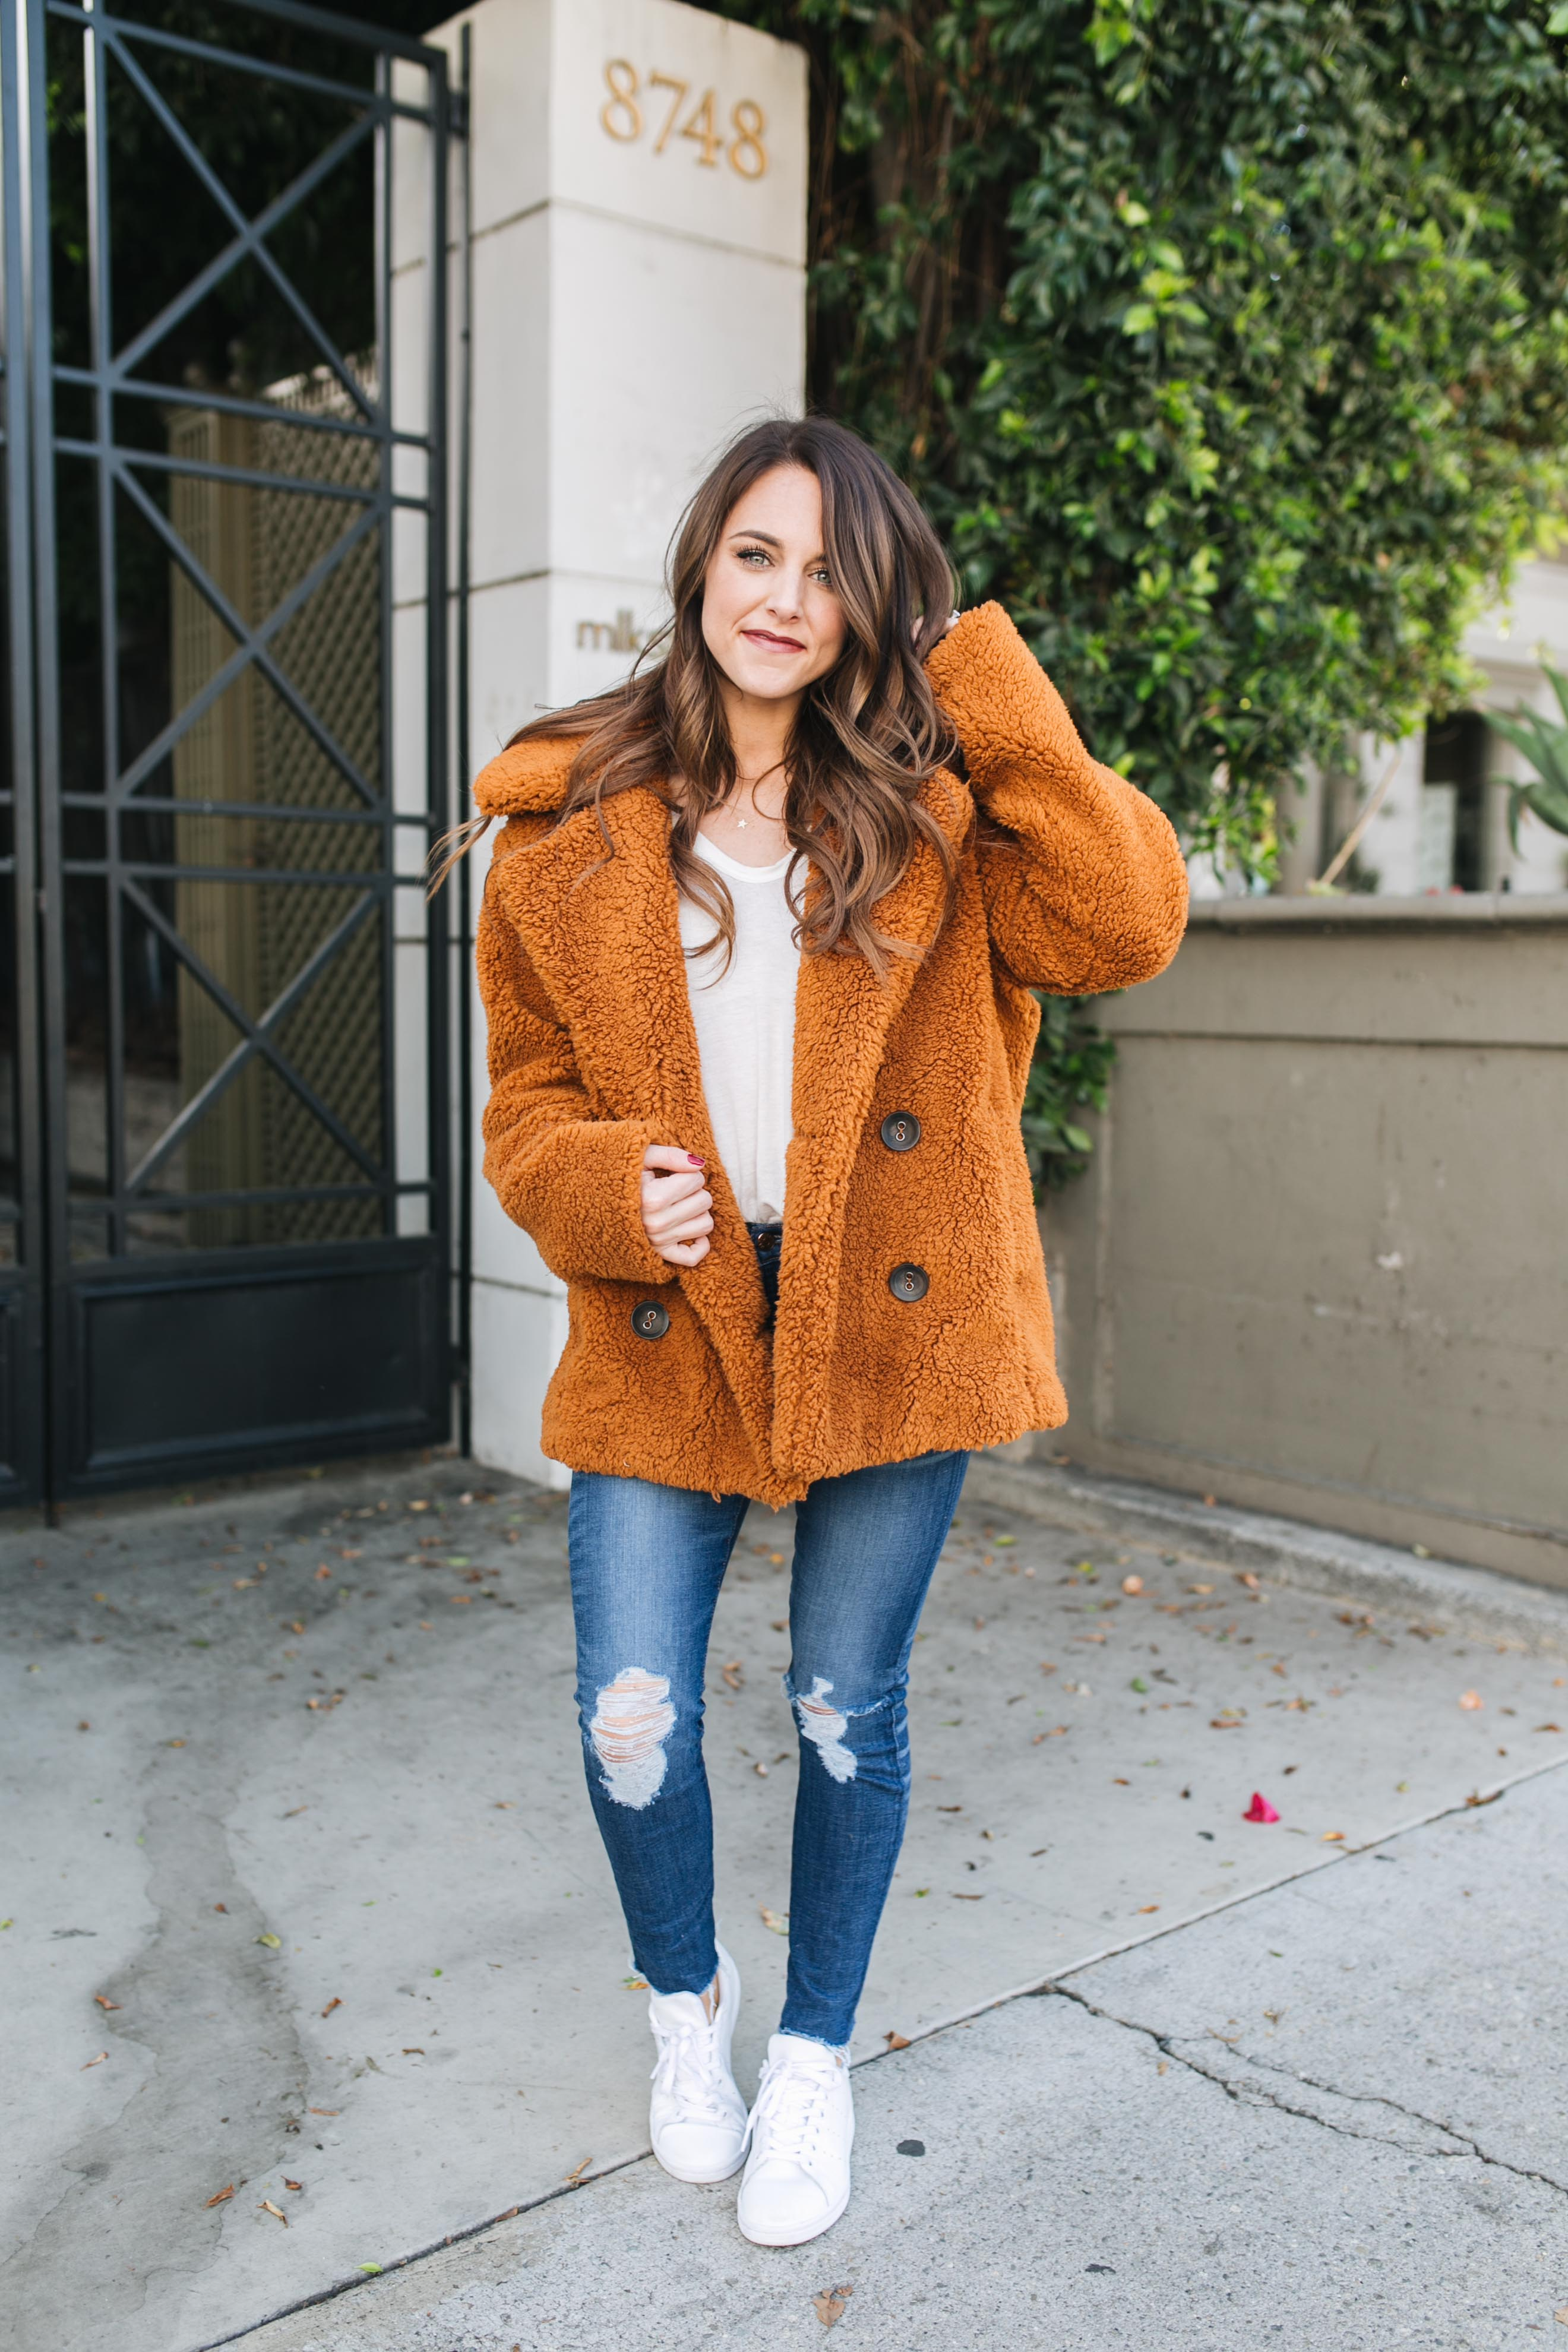 Style blogger Daryl-Ann Denner rounds up top 10 coats under $200 and styles a free people teddy coat and white adidas